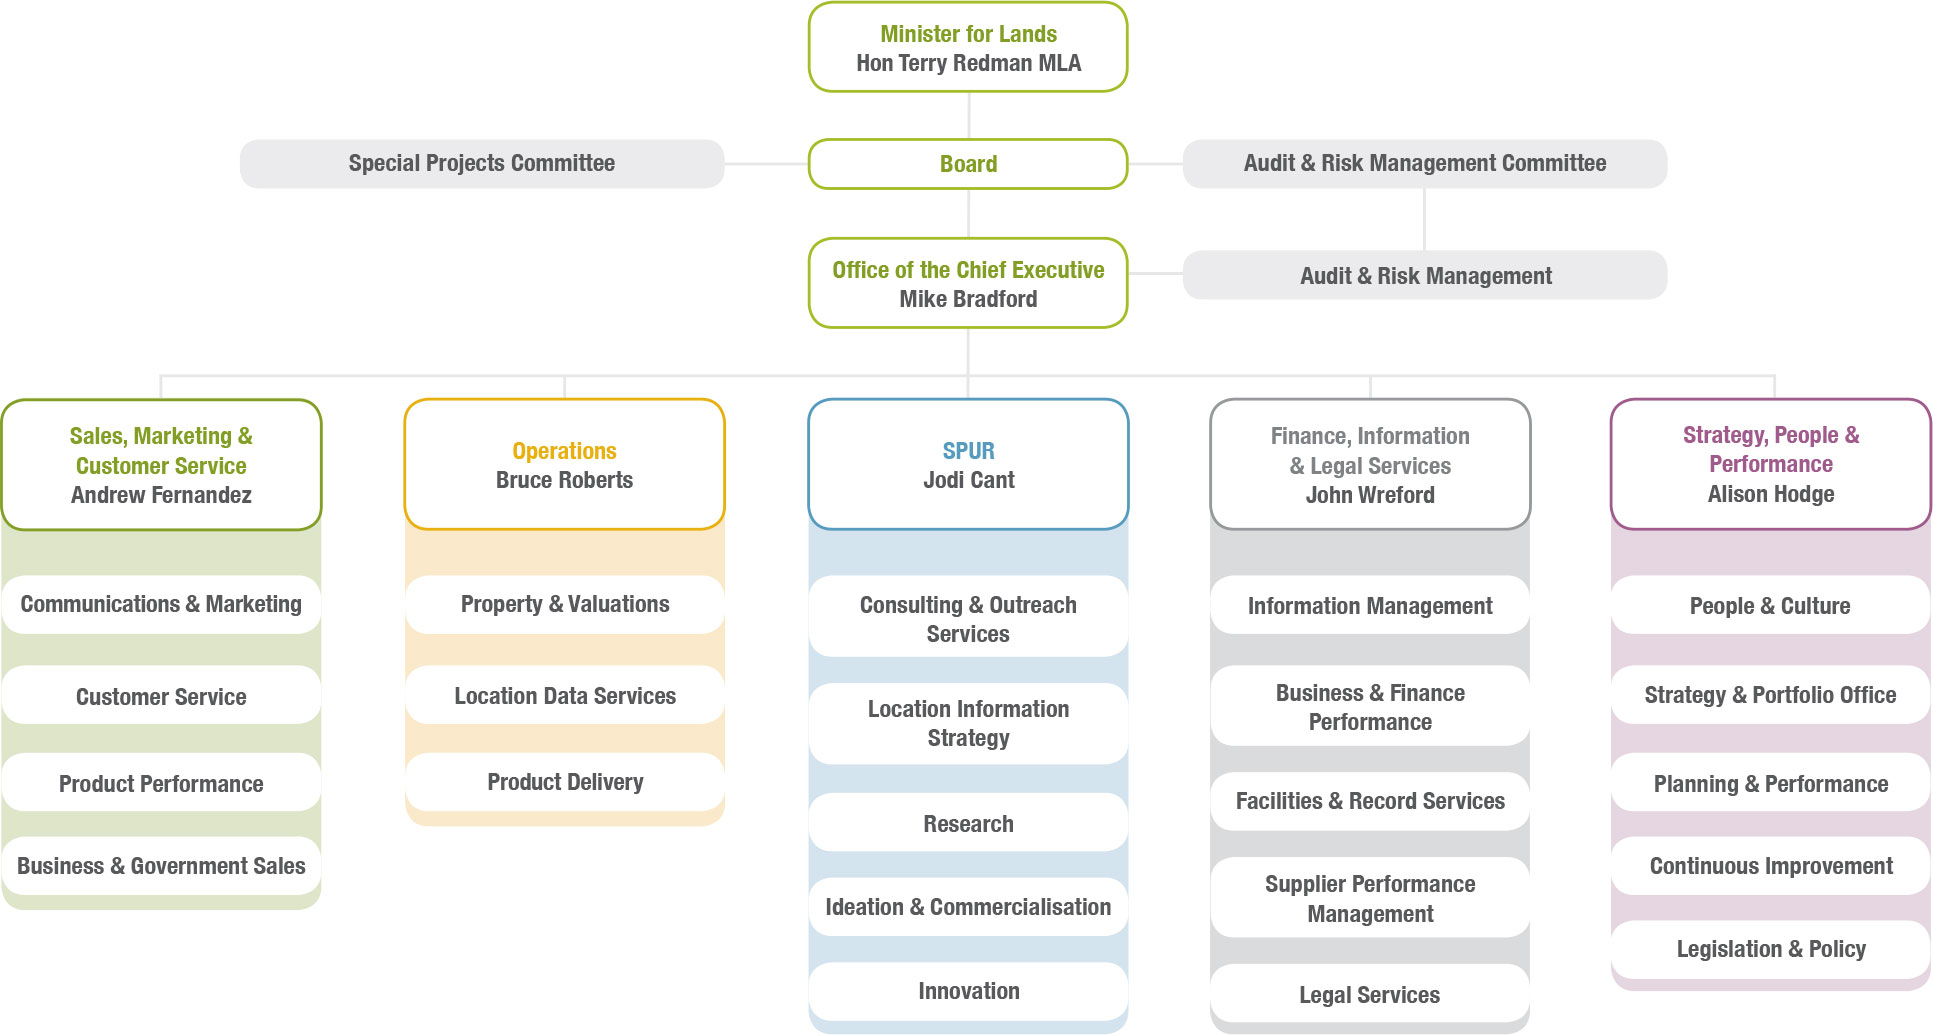 Image of Landgate's organisational chart featuring Hon Terry Redman MLA - Minister for Lands, Mike Bradford - Office of the Chief Executive, Andrew Fernandez - Sales, Marketing and Customer Service, Bruce Roberts – Operations, Jodi Cant - SPUR, John Wreford - Finance, Information and Legal Services and Alison Hodge – Strategy, People and Performance.